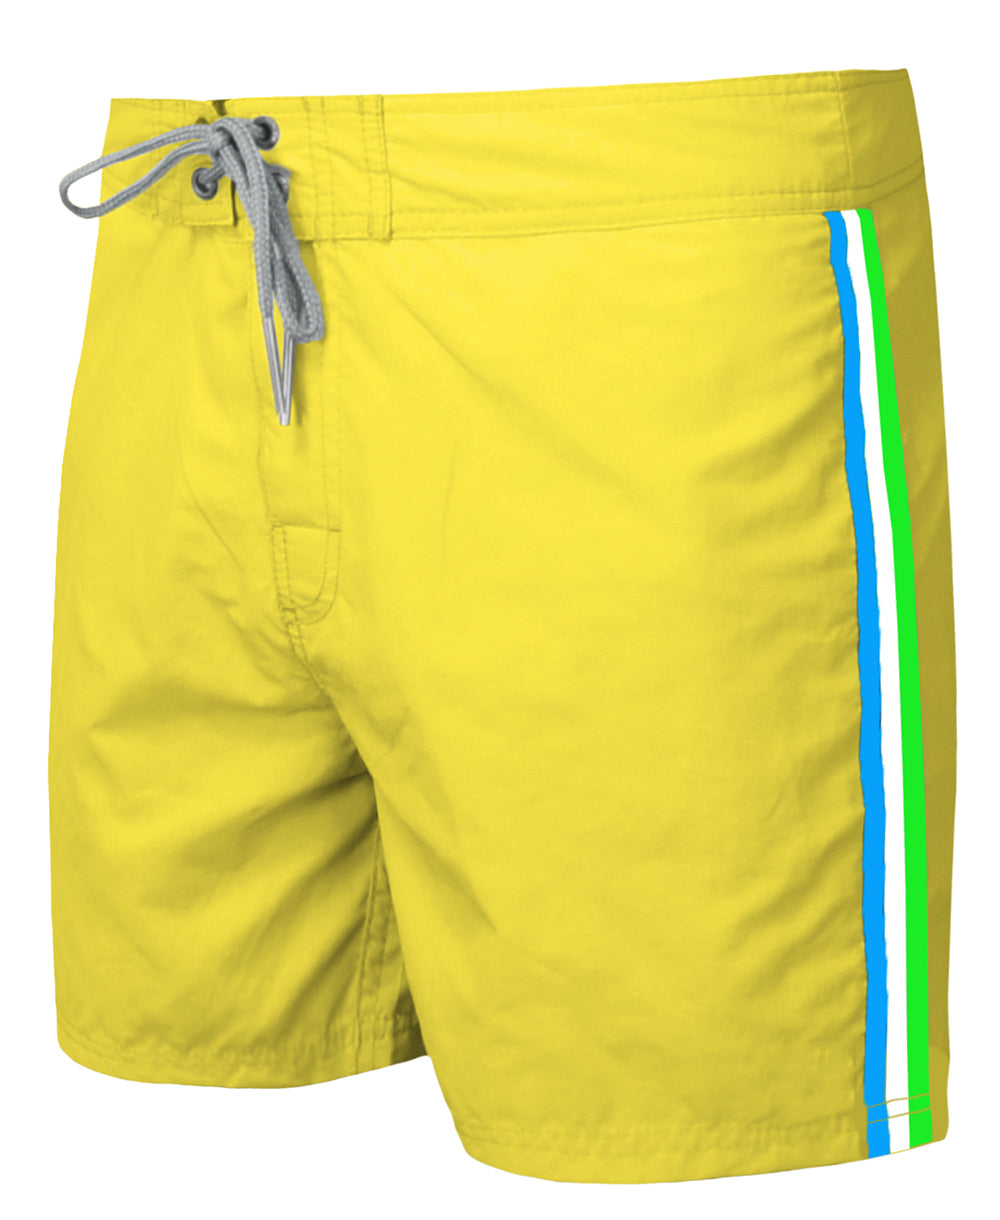 WAXX Stripes Fluo Yellow Men's Beach Short